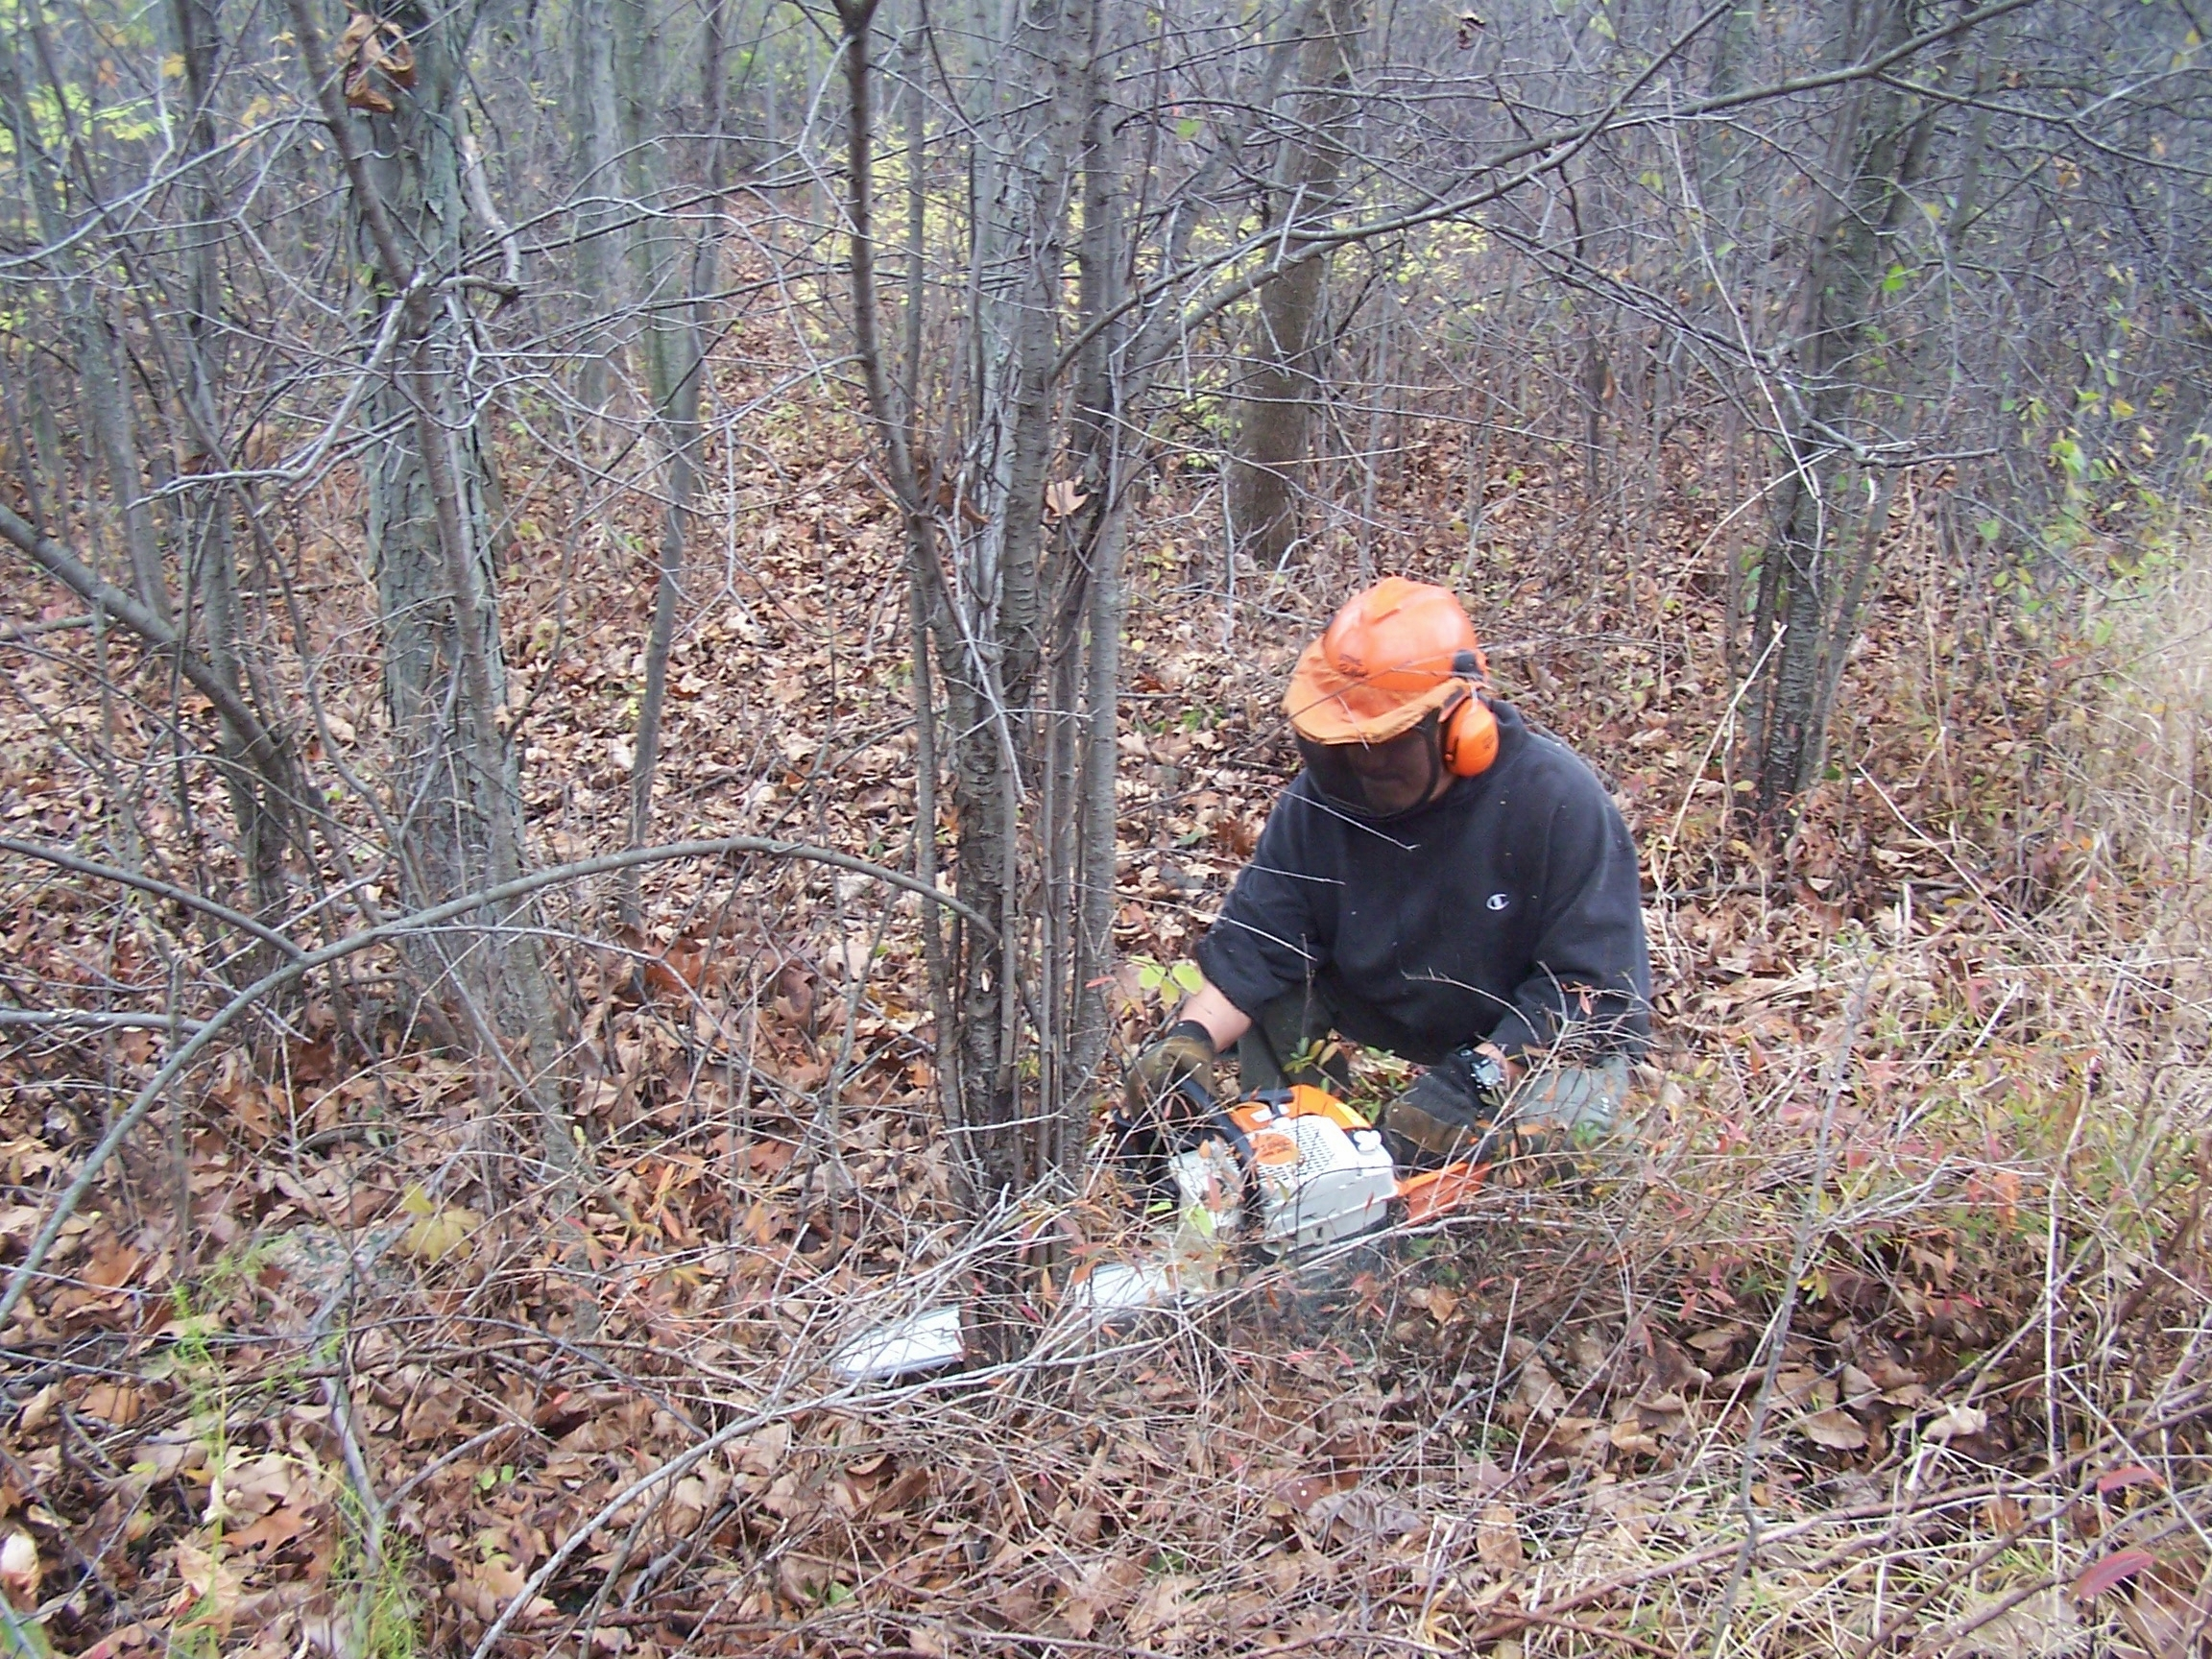 Buckthorn is most invasive plants needing removal.